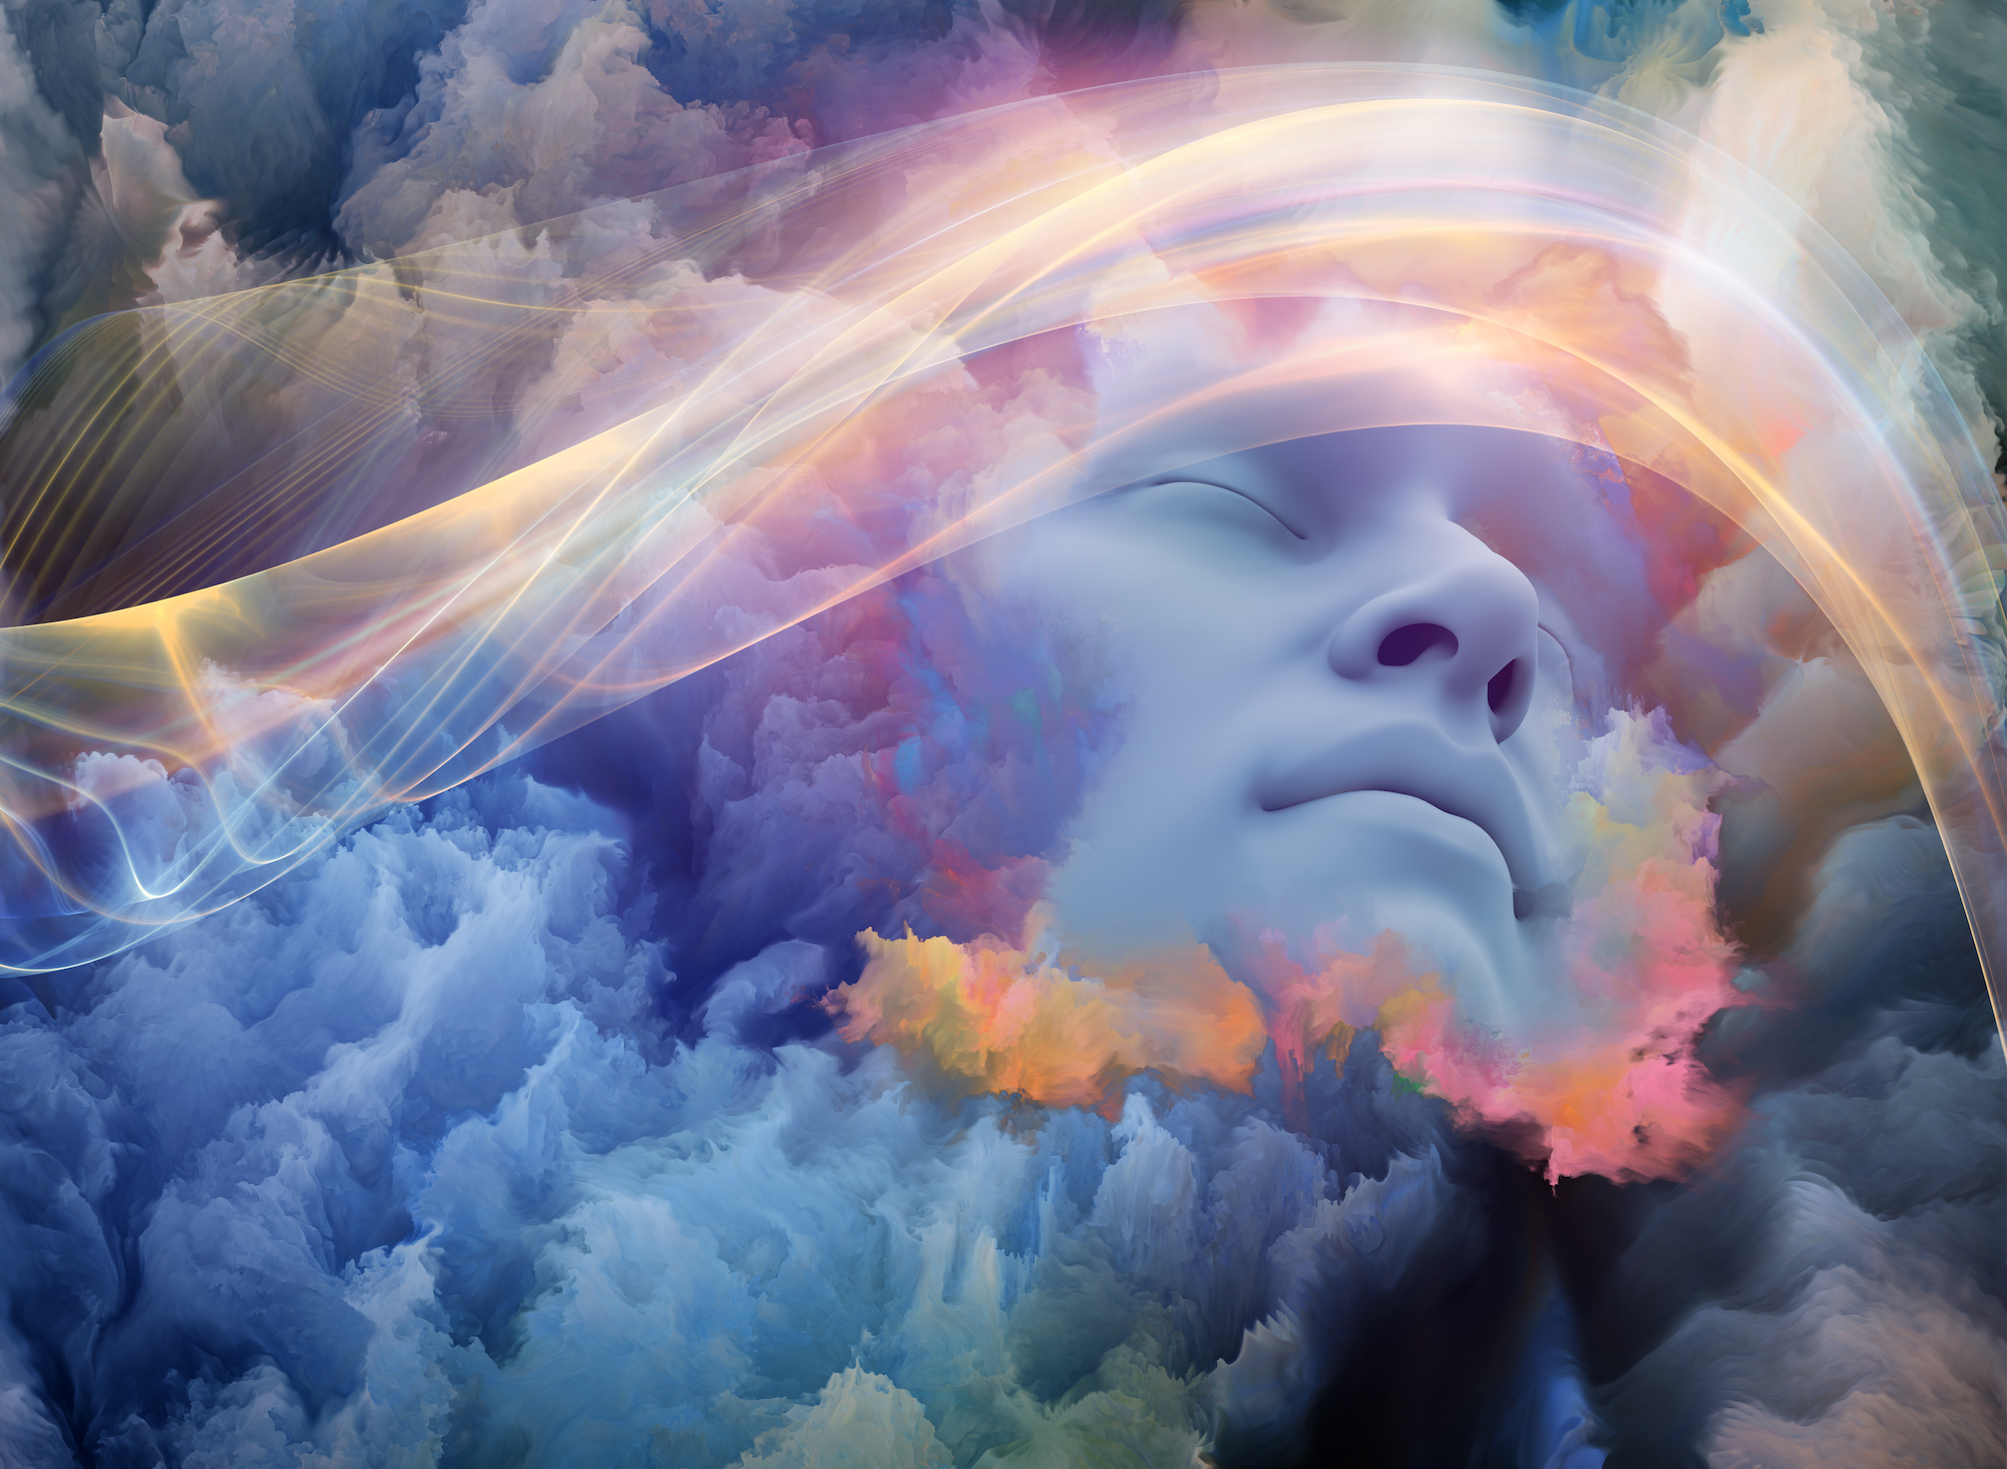 Scientists have found that a drug called galantamine, used for treating Alzheimer's, is a highly effective way of inducing lucid dreams.